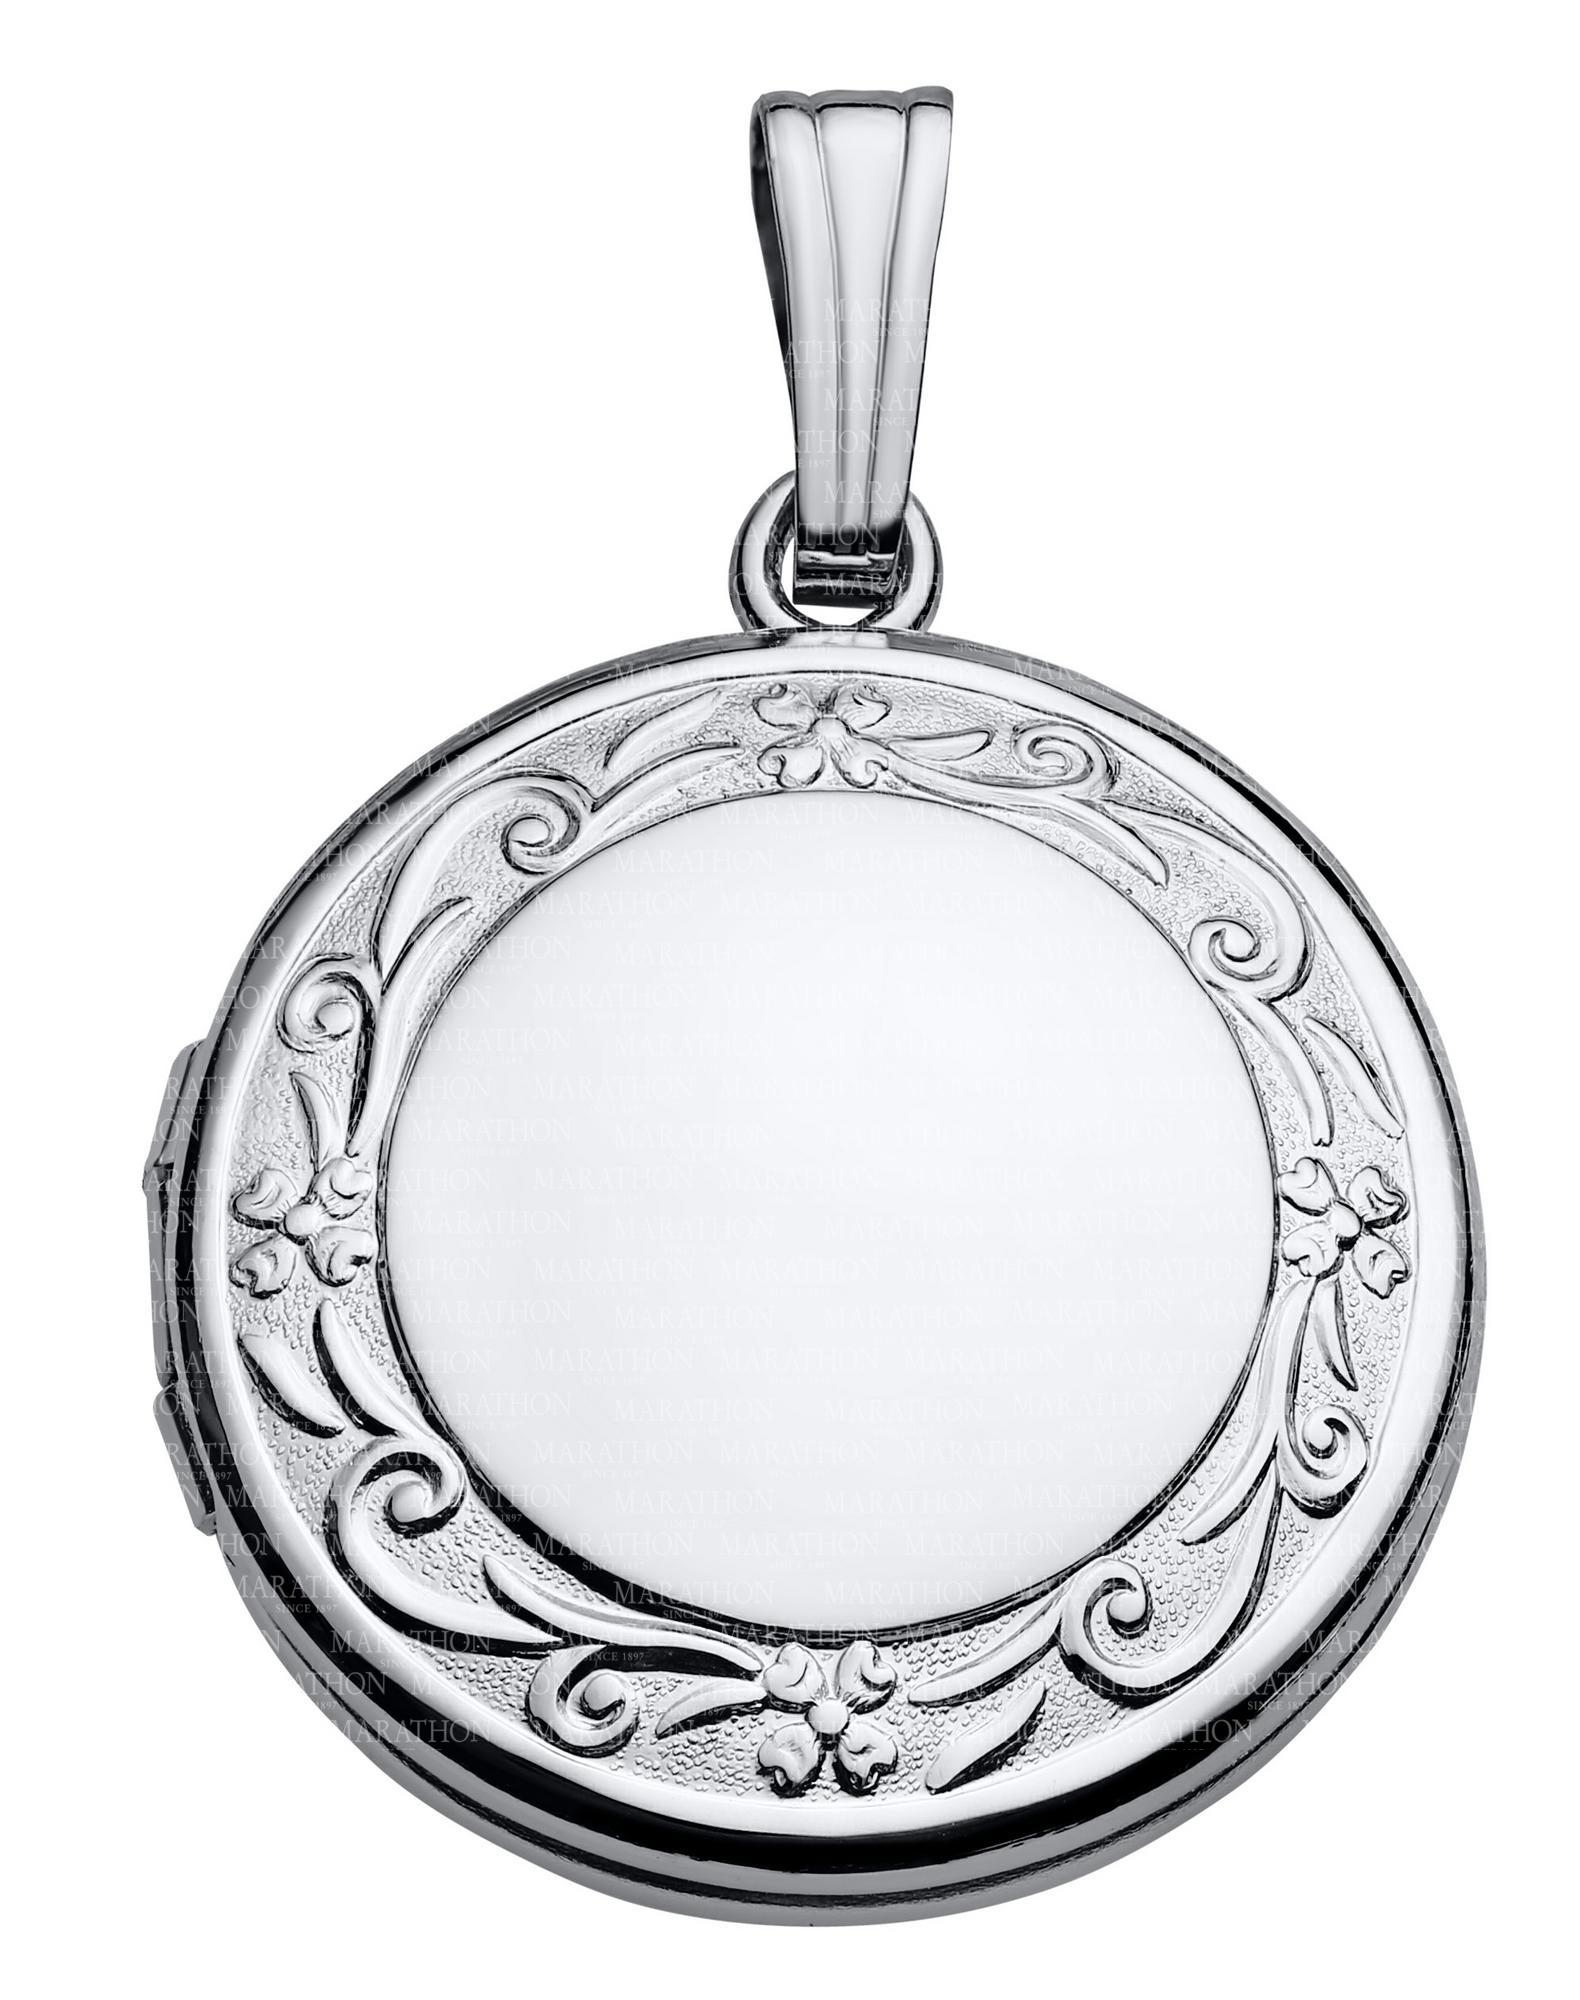 14K White Gold 19mm Round Floral Photo Locket Pendant Charm Engraved Personalized Monogram